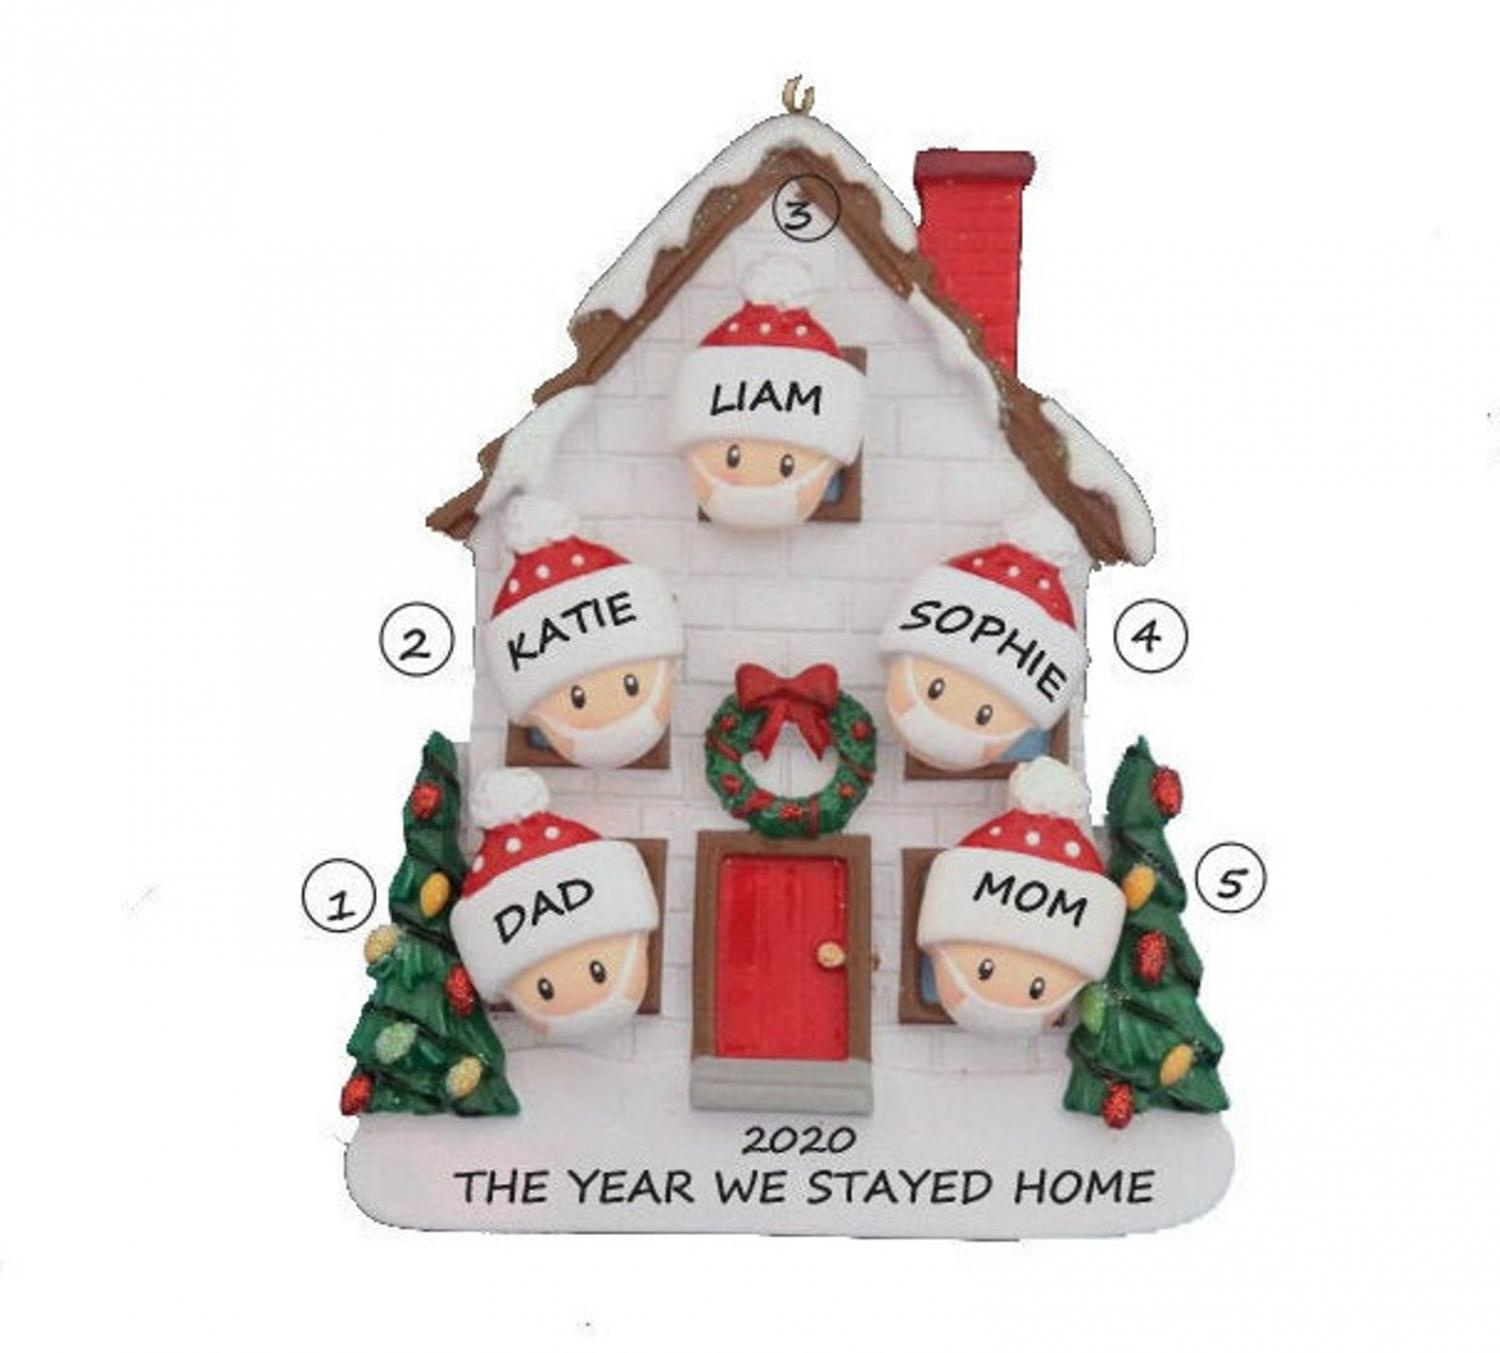 2020, The Year We Stayed Home - Family In Face Masks Quarantine Christmas Ornament